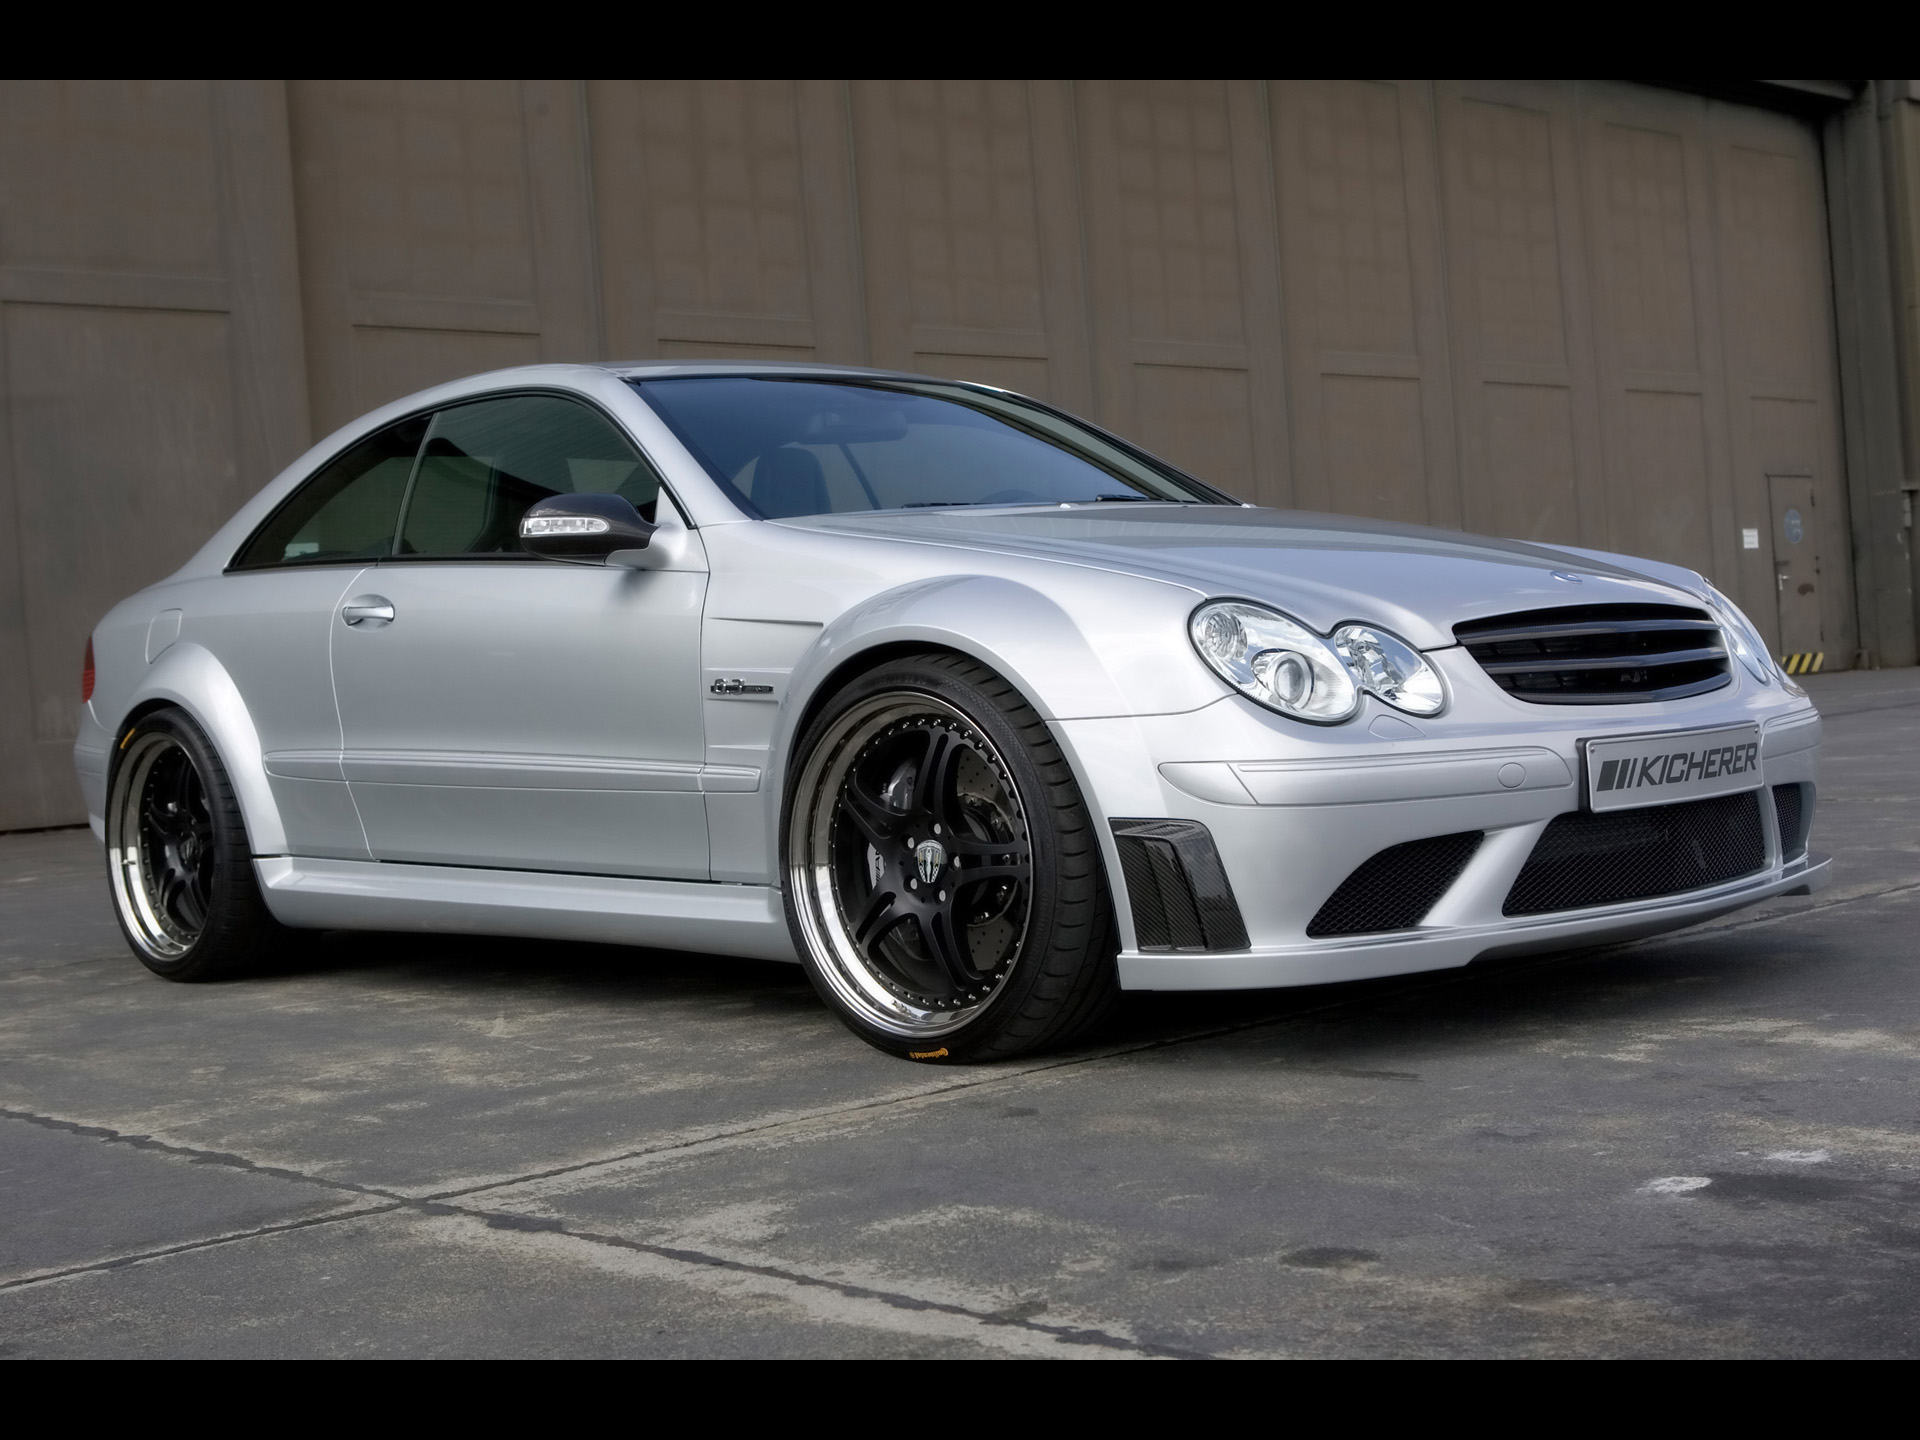 kicherer mercedes benz clk 63 amg photos photogallery. Black Bedroom Furniture Sets. Home Design Ideas